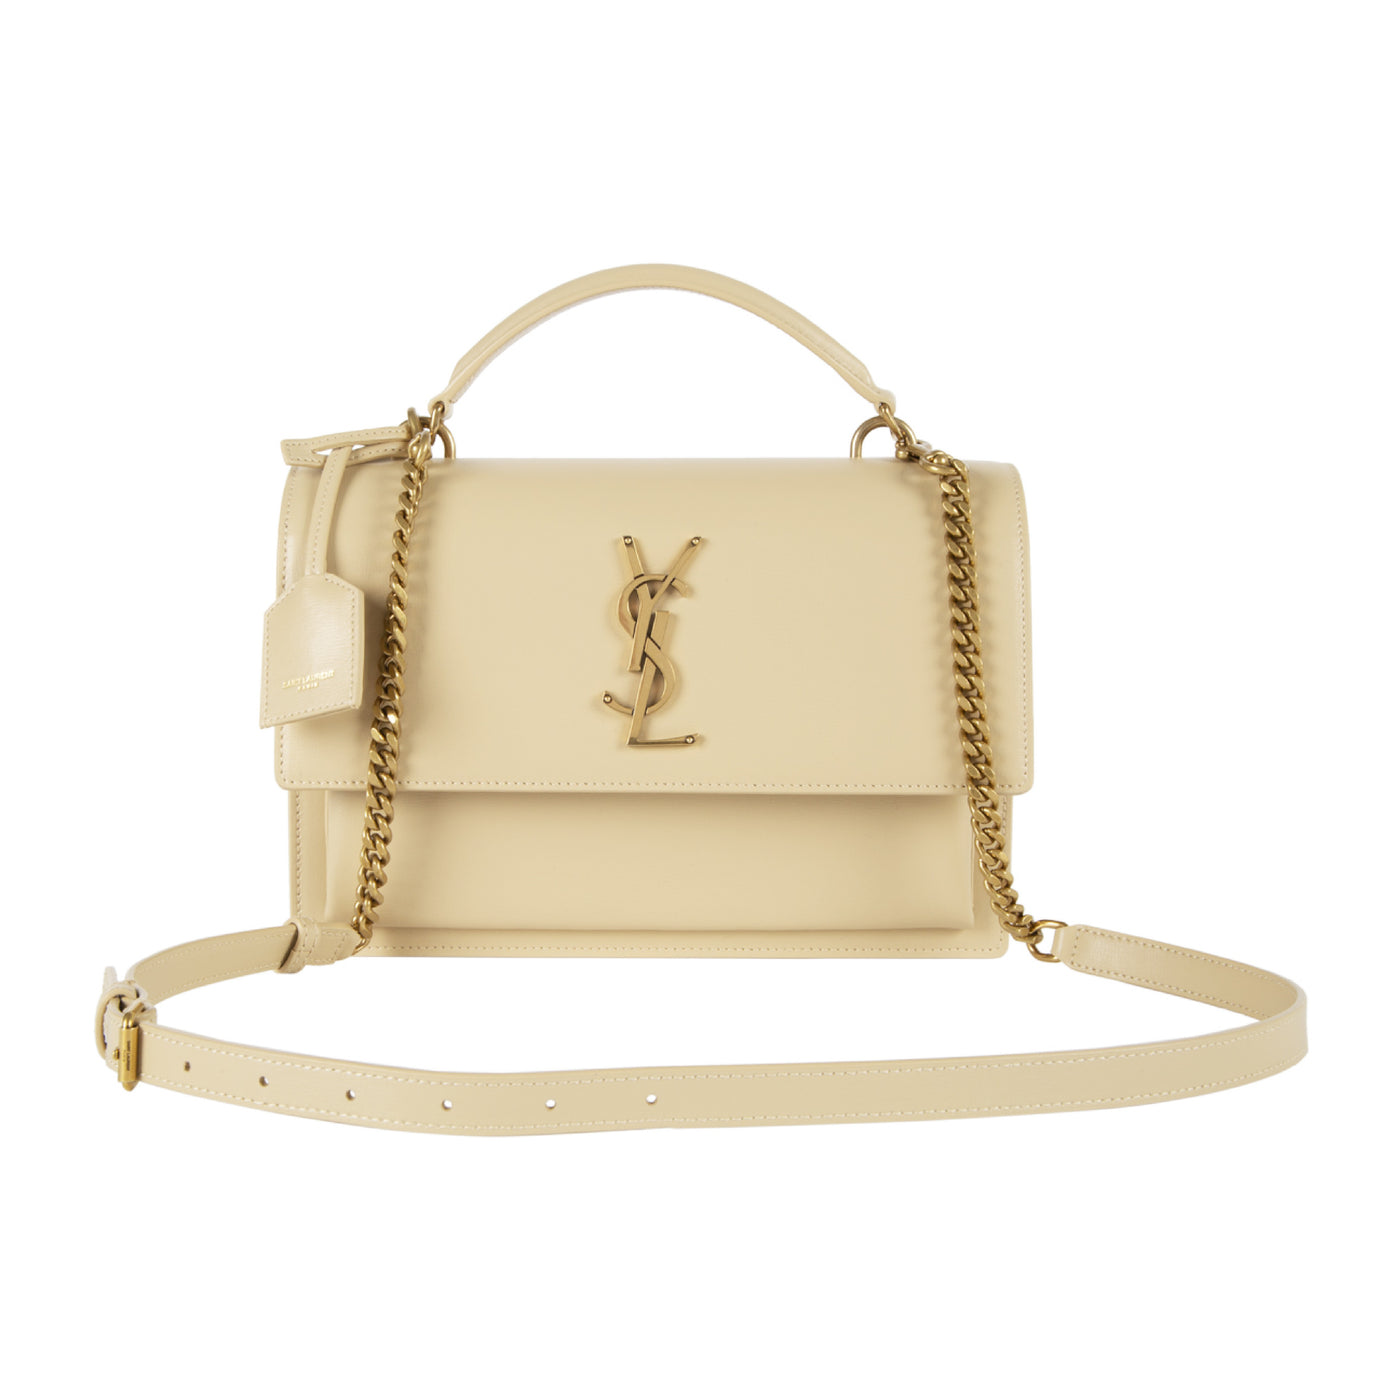 "Load image into Gallery viewer, SAINT LAURENT ""SUNSET"" HANDBAG WHITE"